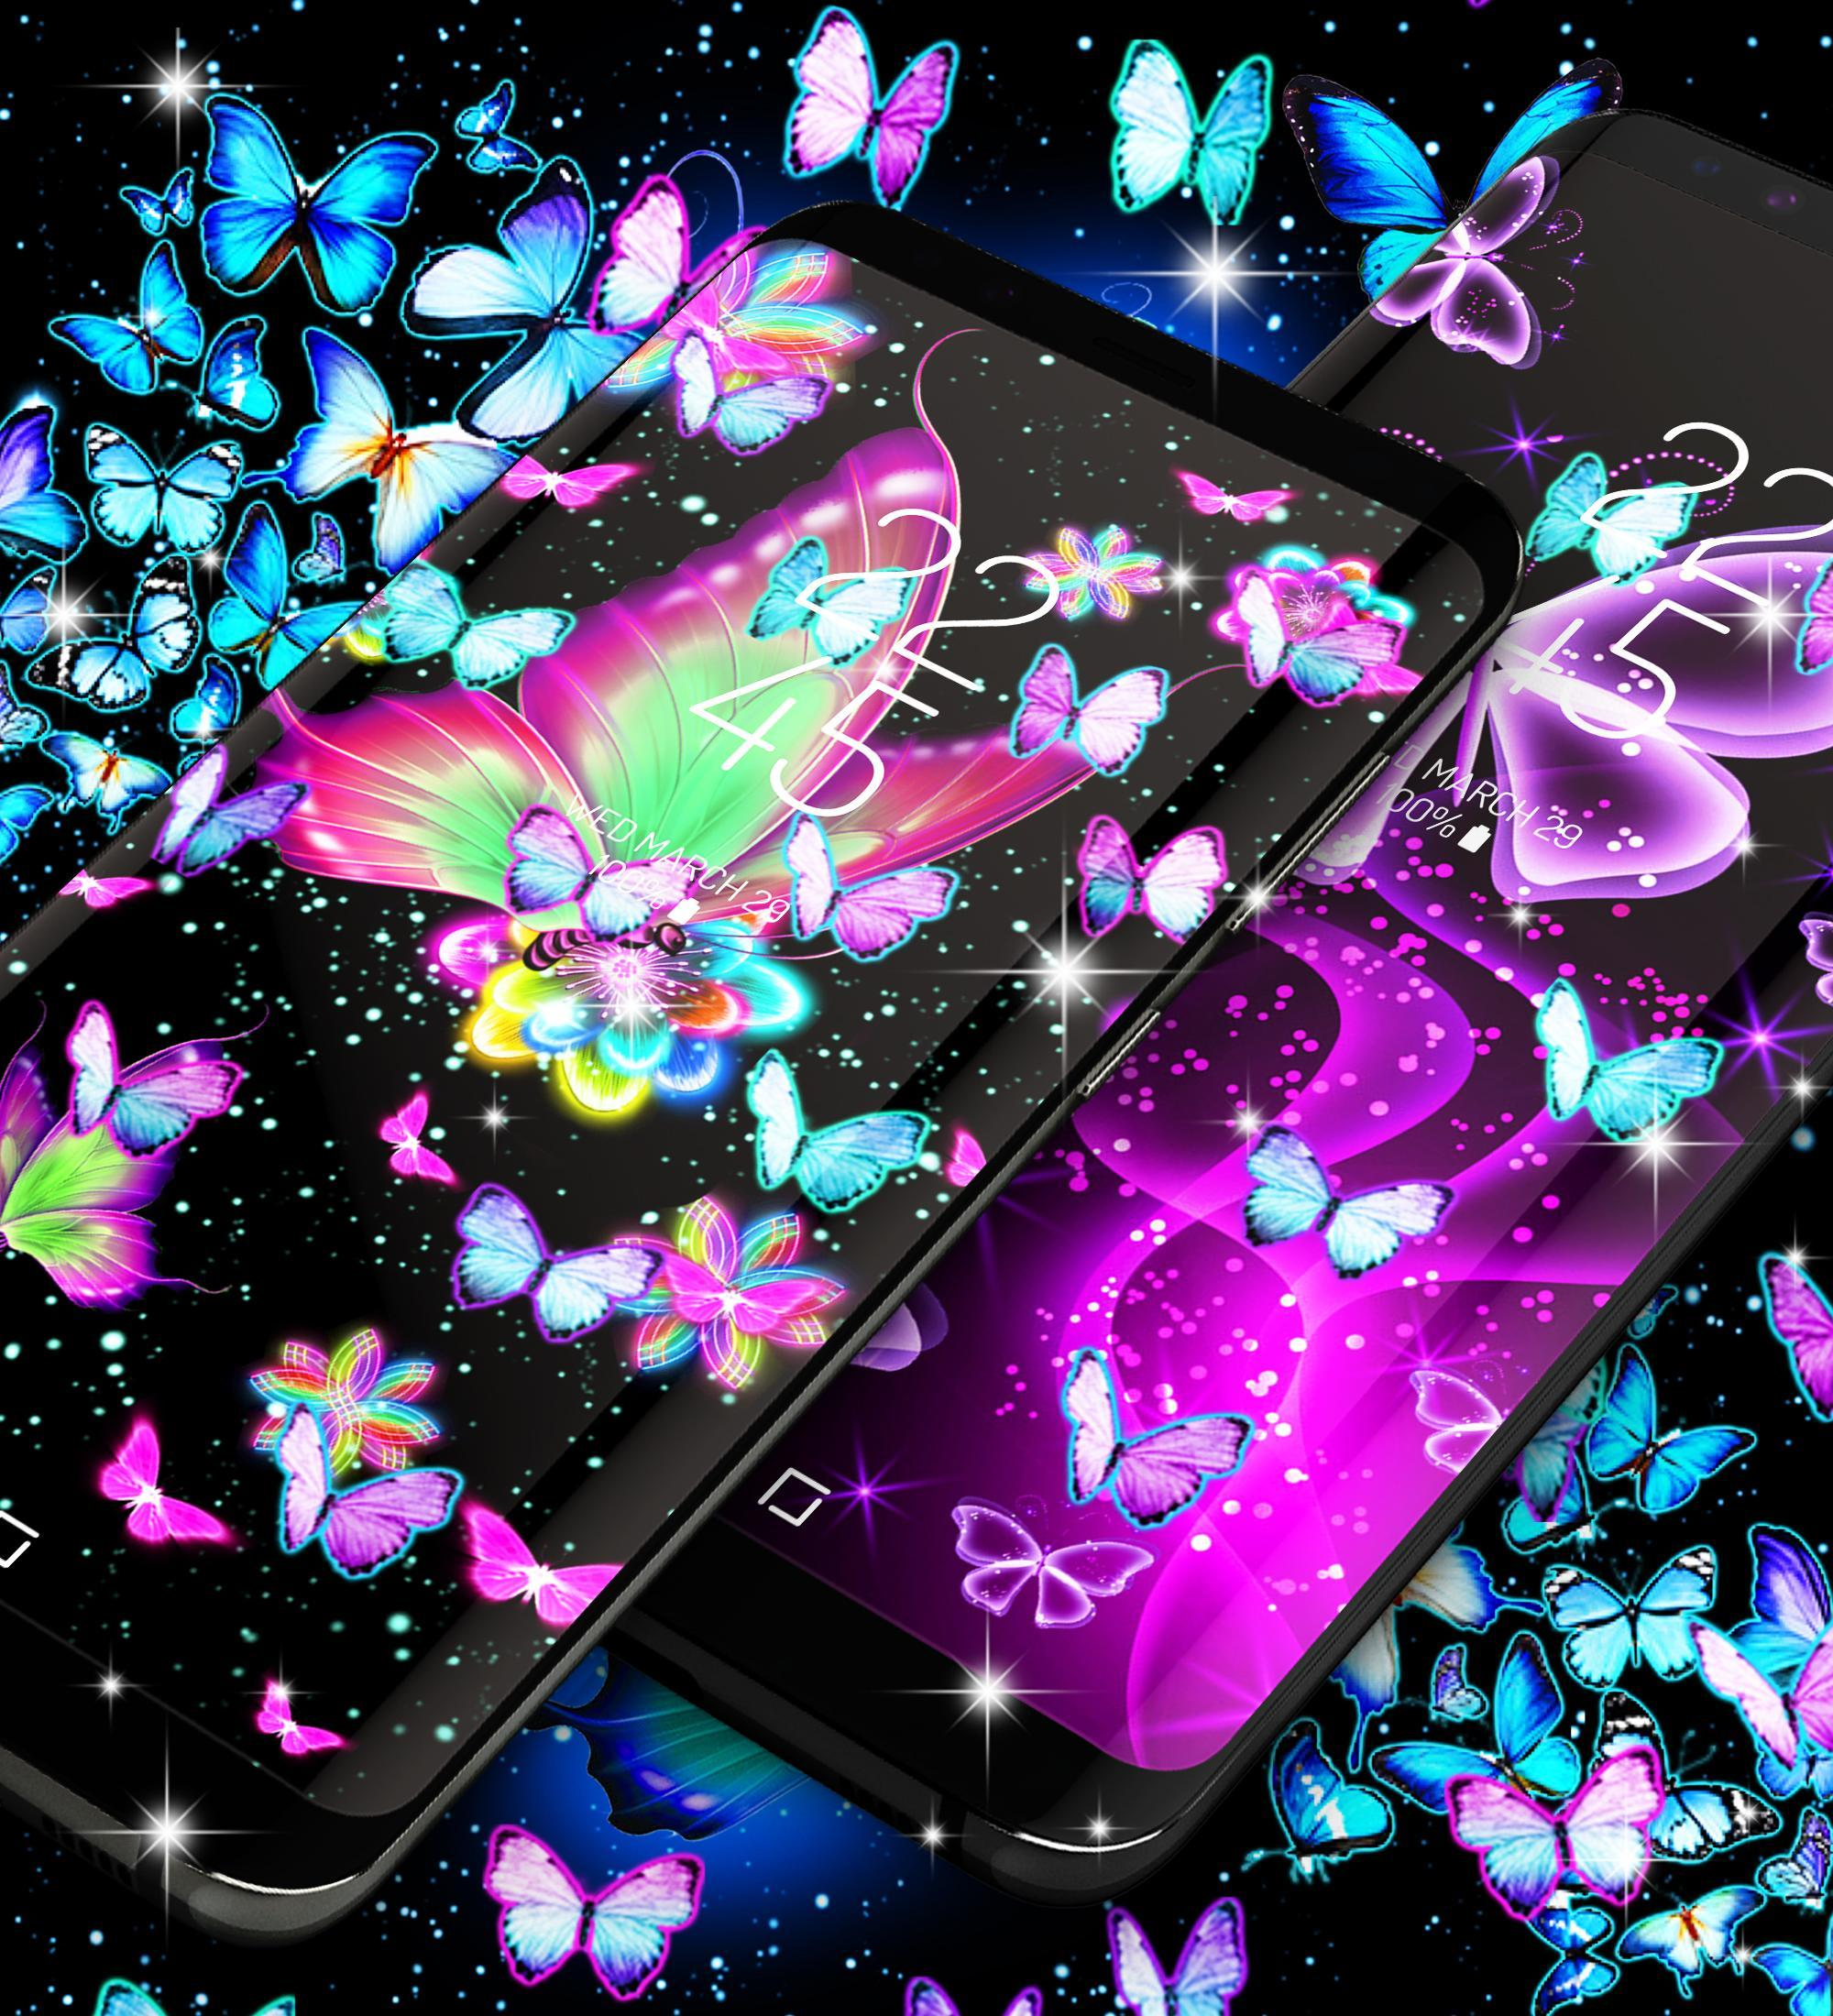 Neon butterflies glowing live wallpaper for Android - APK ...